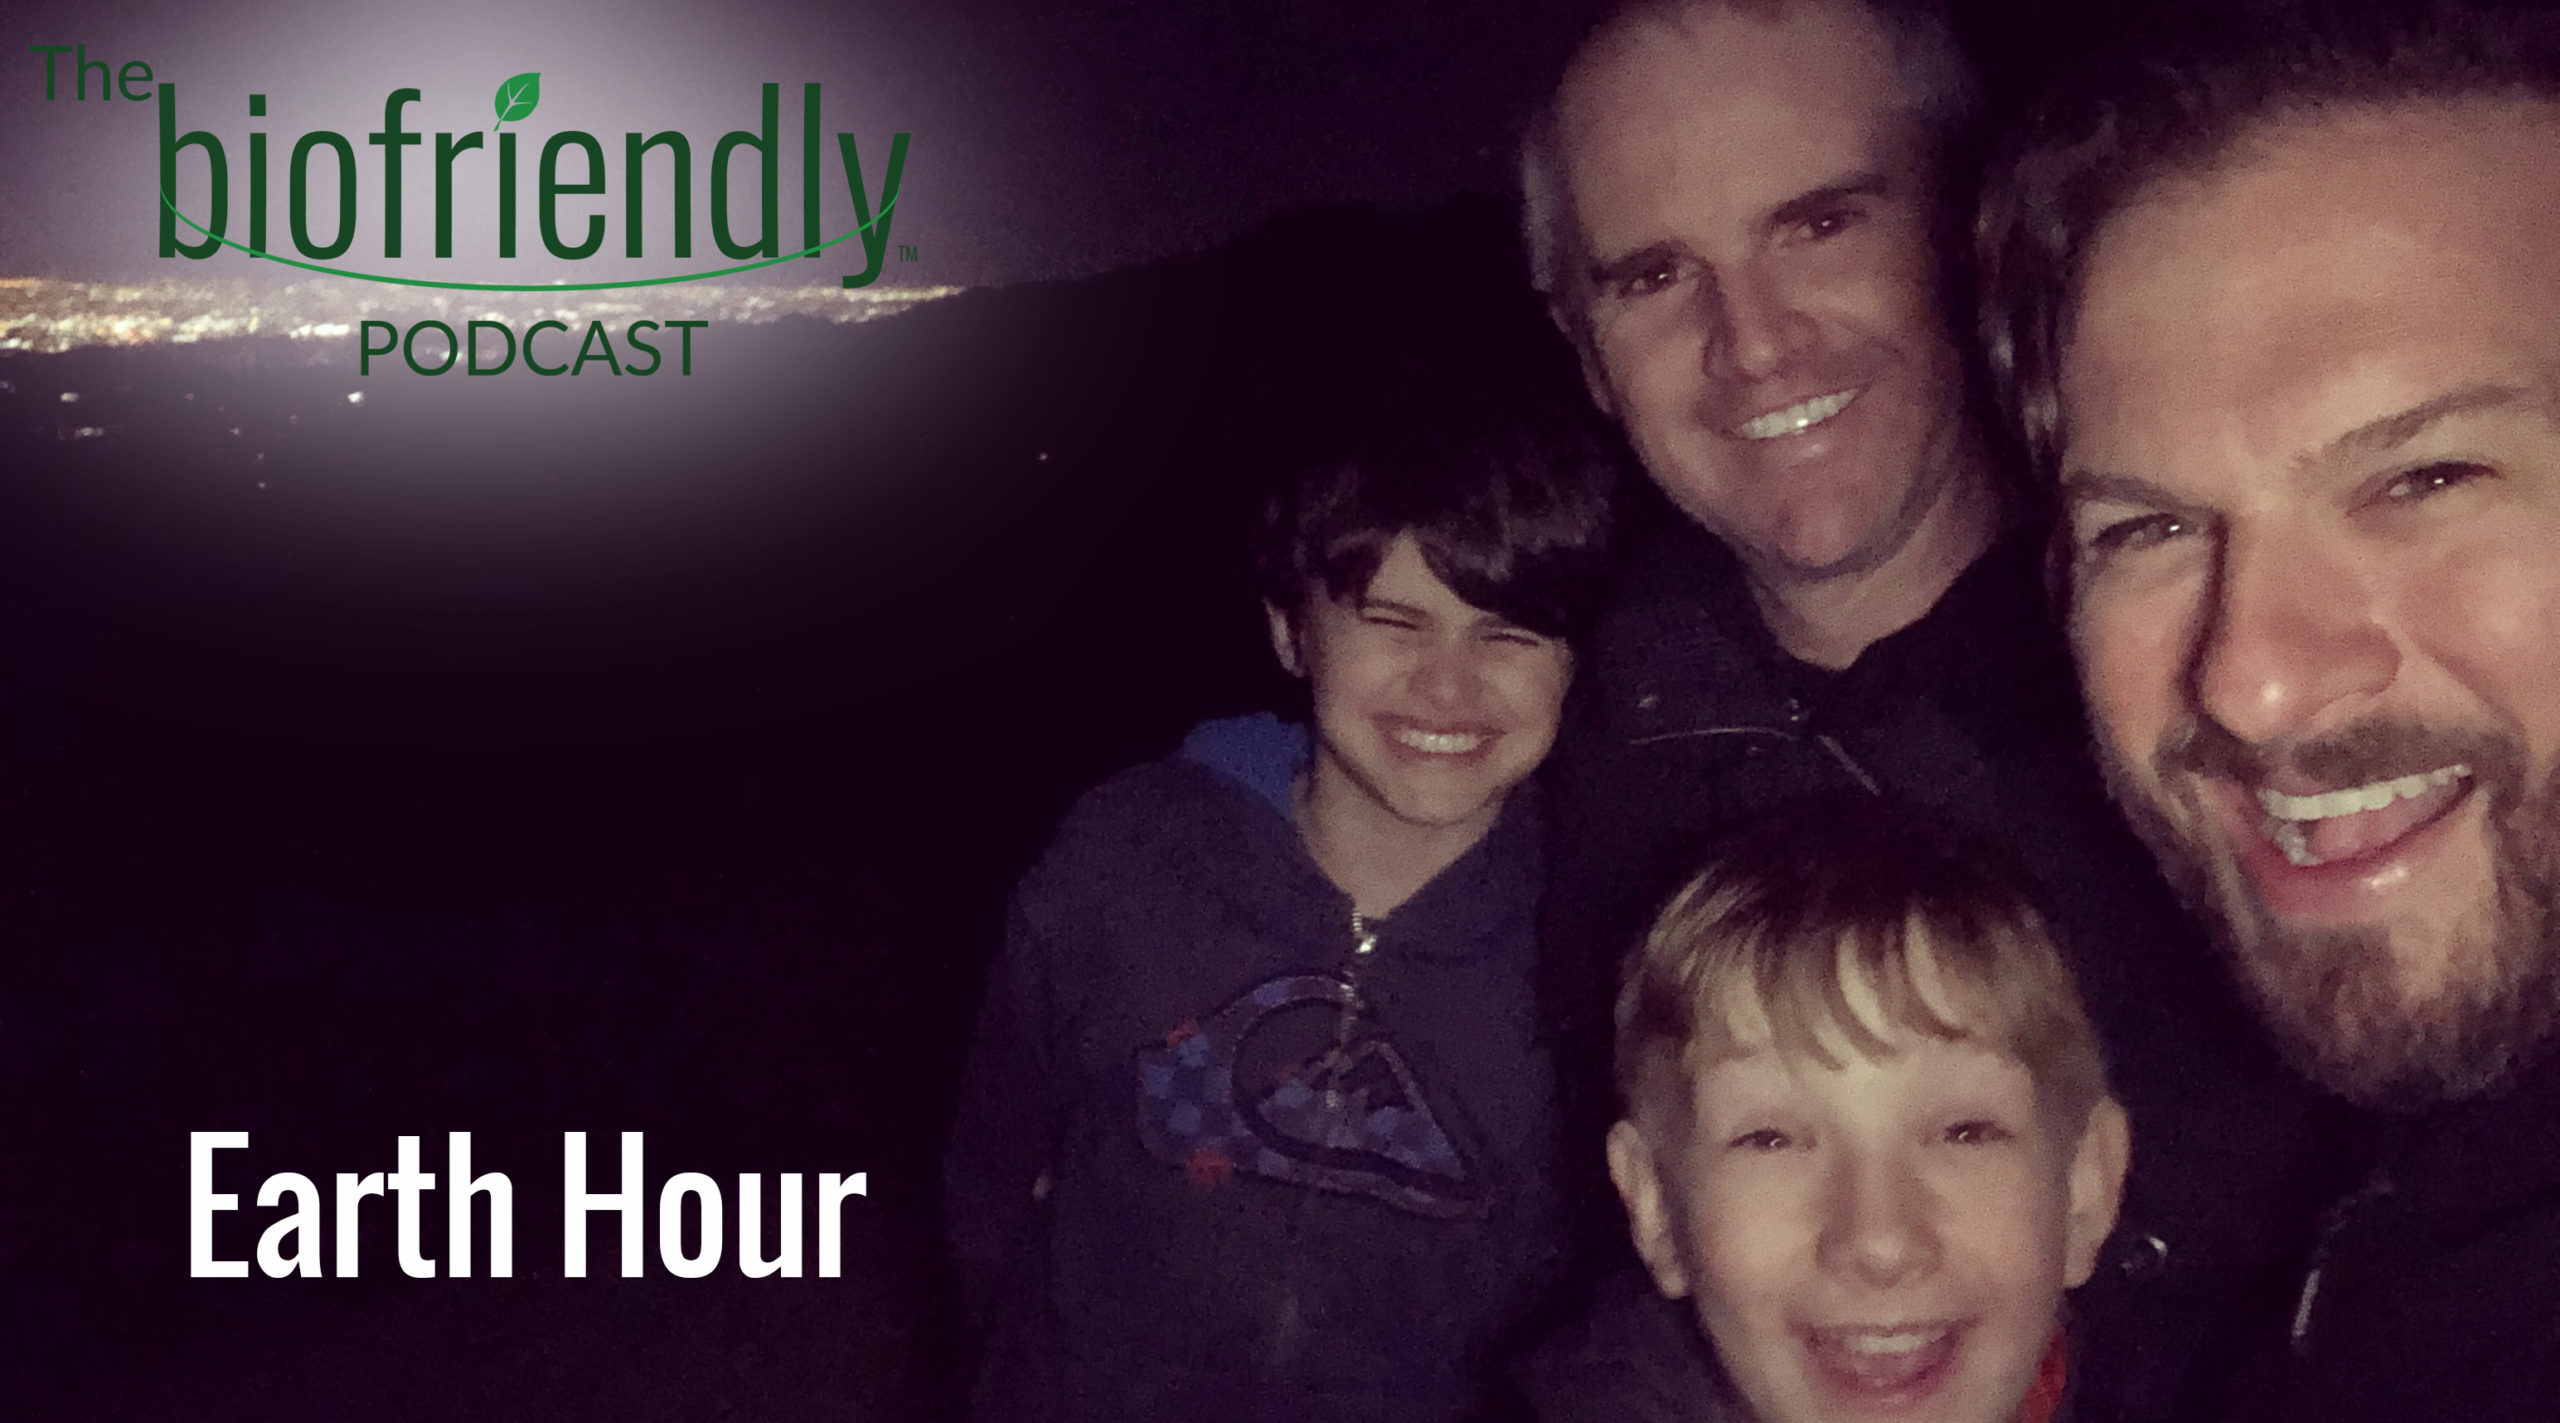 The Biofriendly Podcast - Earth Hour